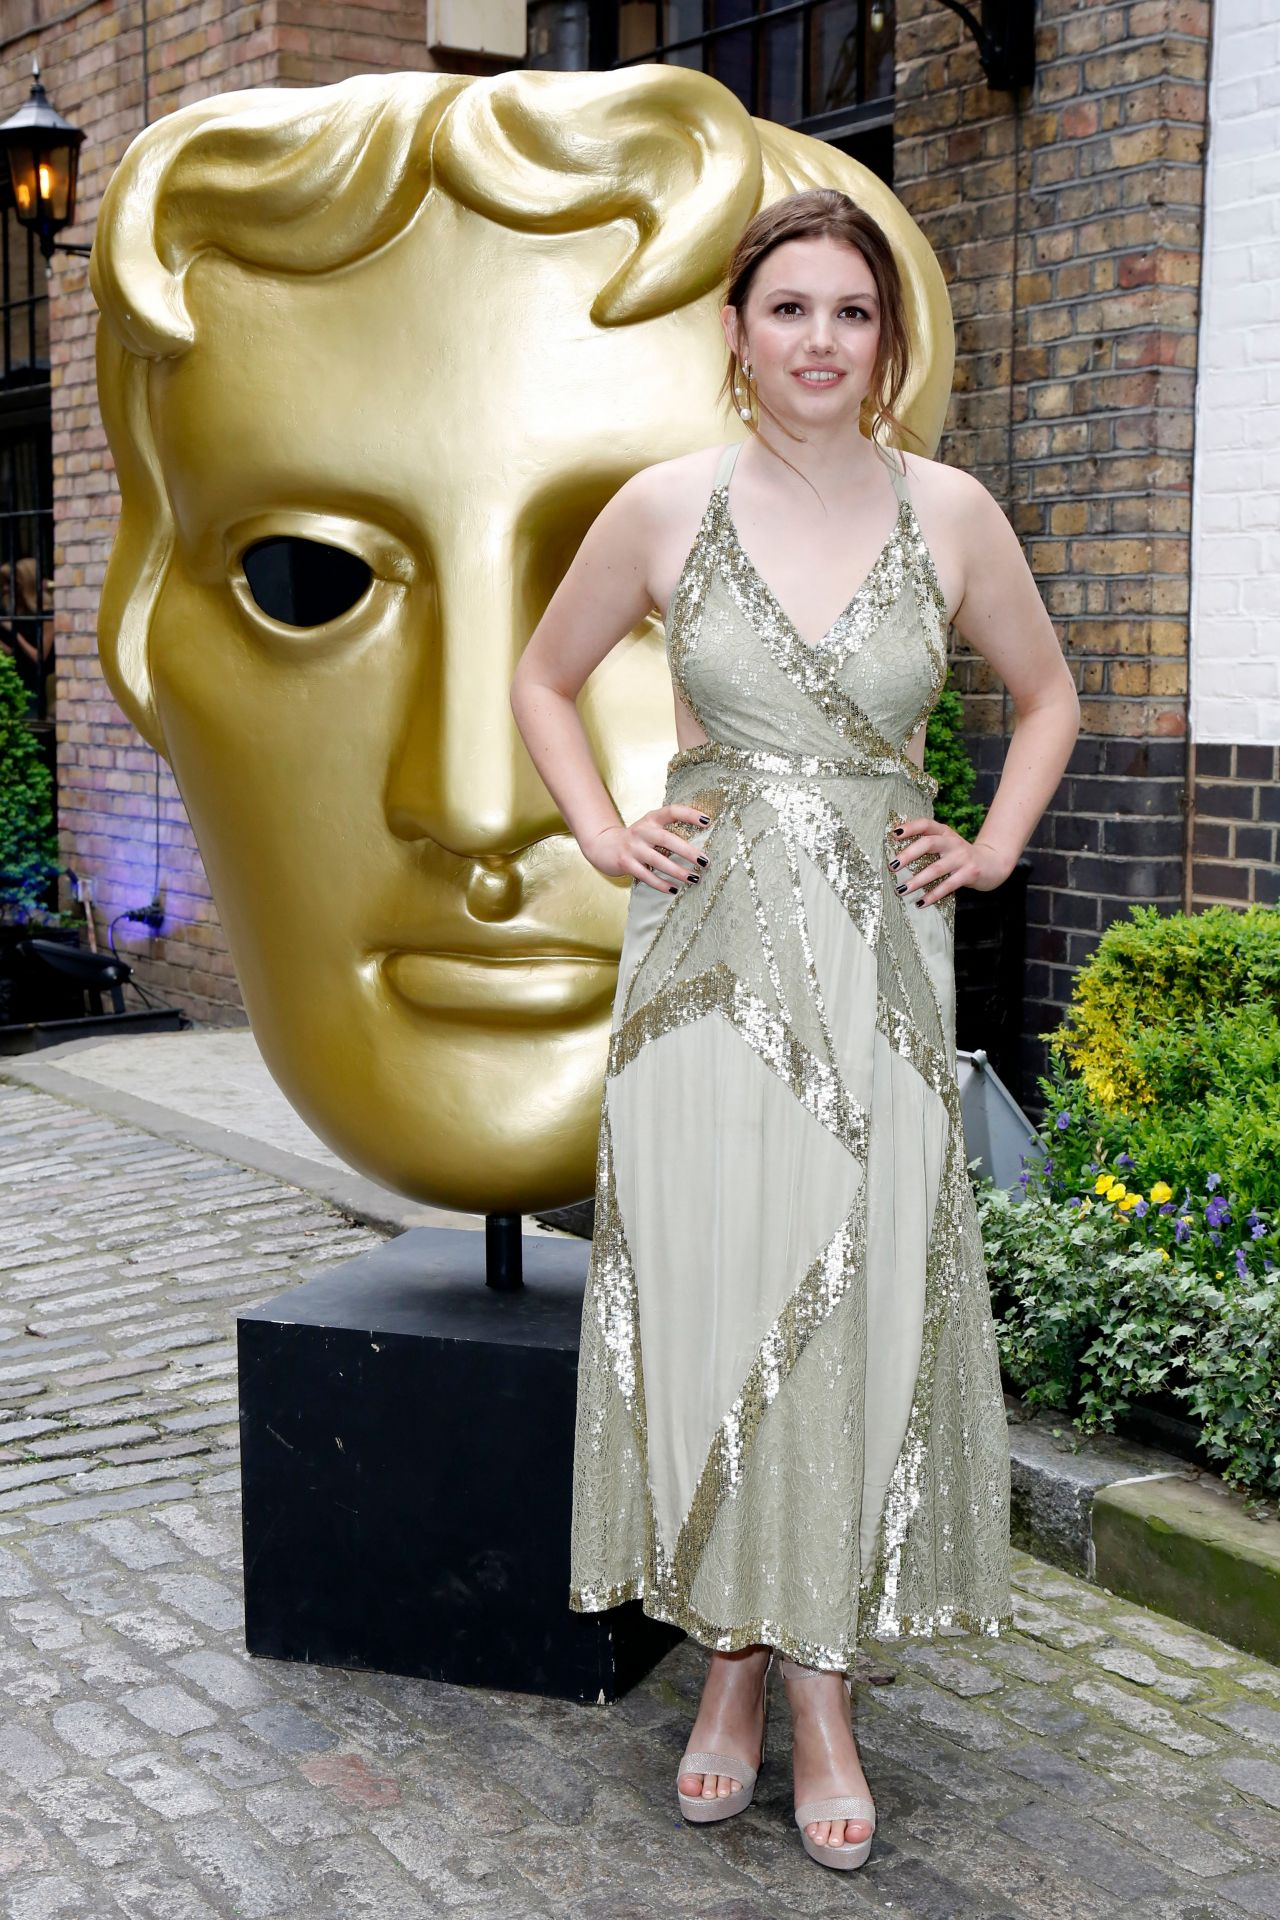 http://celebmafia.com/wp-content/uploads/2018/04/hannah-murray-2018-bafta-tv-craft-awards-in-london-3.jpg